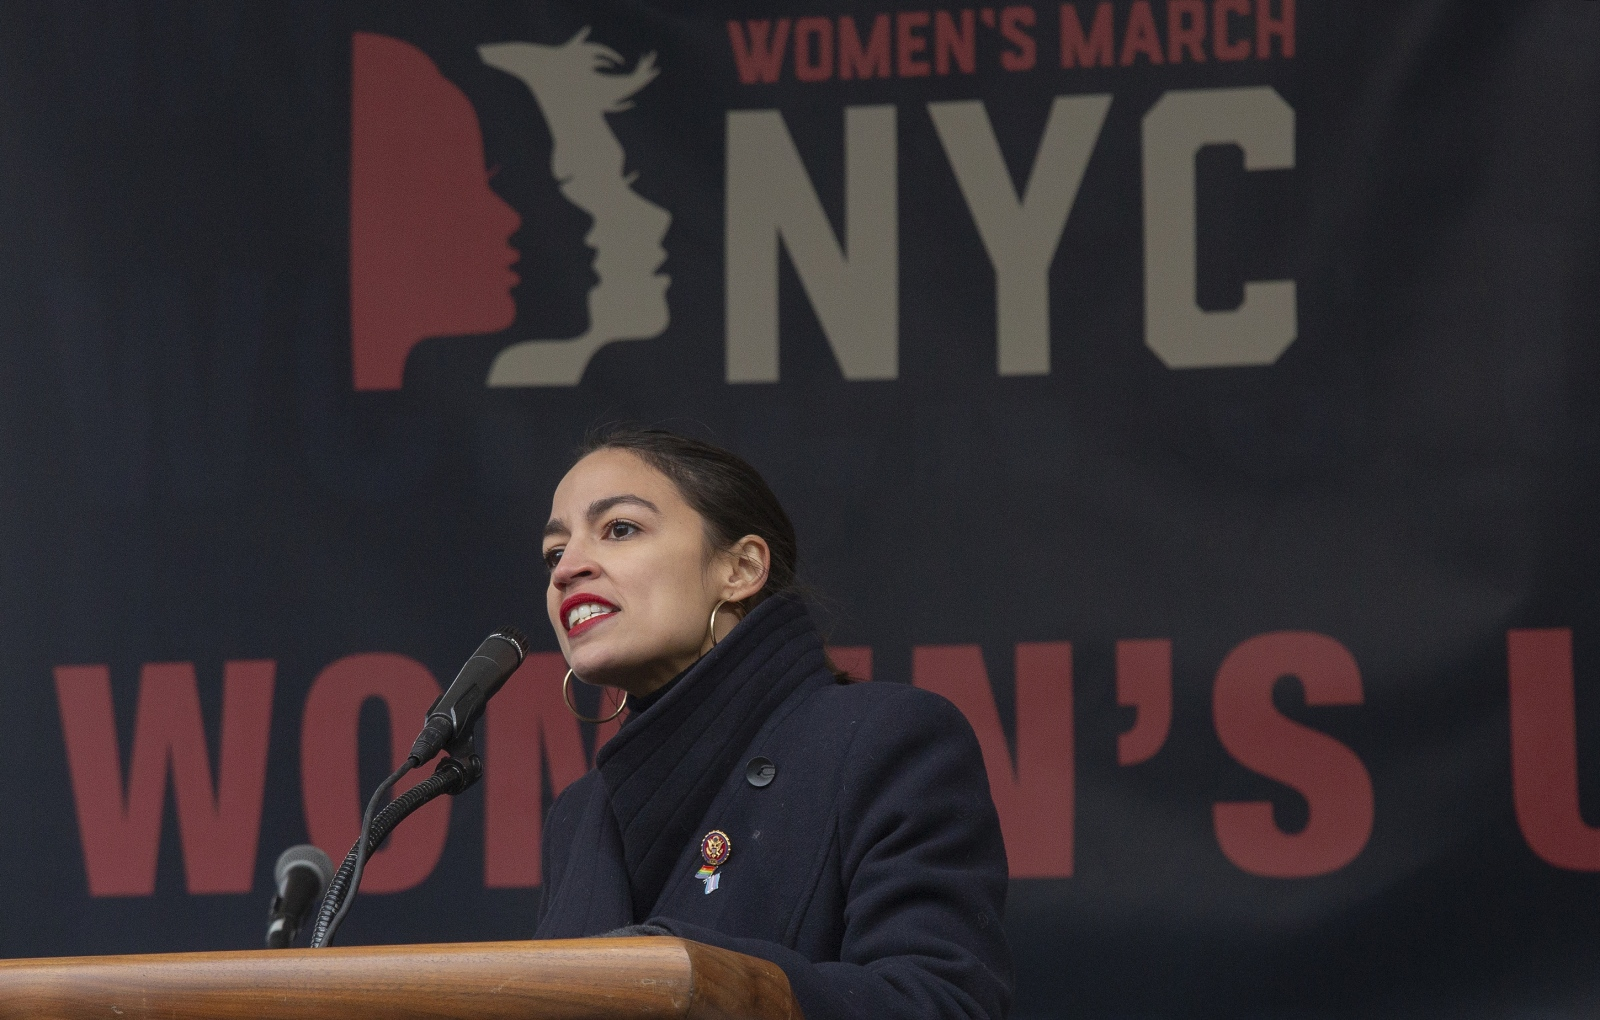 Photography image - Congresswoman Alexandria Ocasio-Cortez  speaking at the Women's March Rally on January 19, 2019, at Foley Square, where thousands of women gathered. New York, NY January 19, 2018.